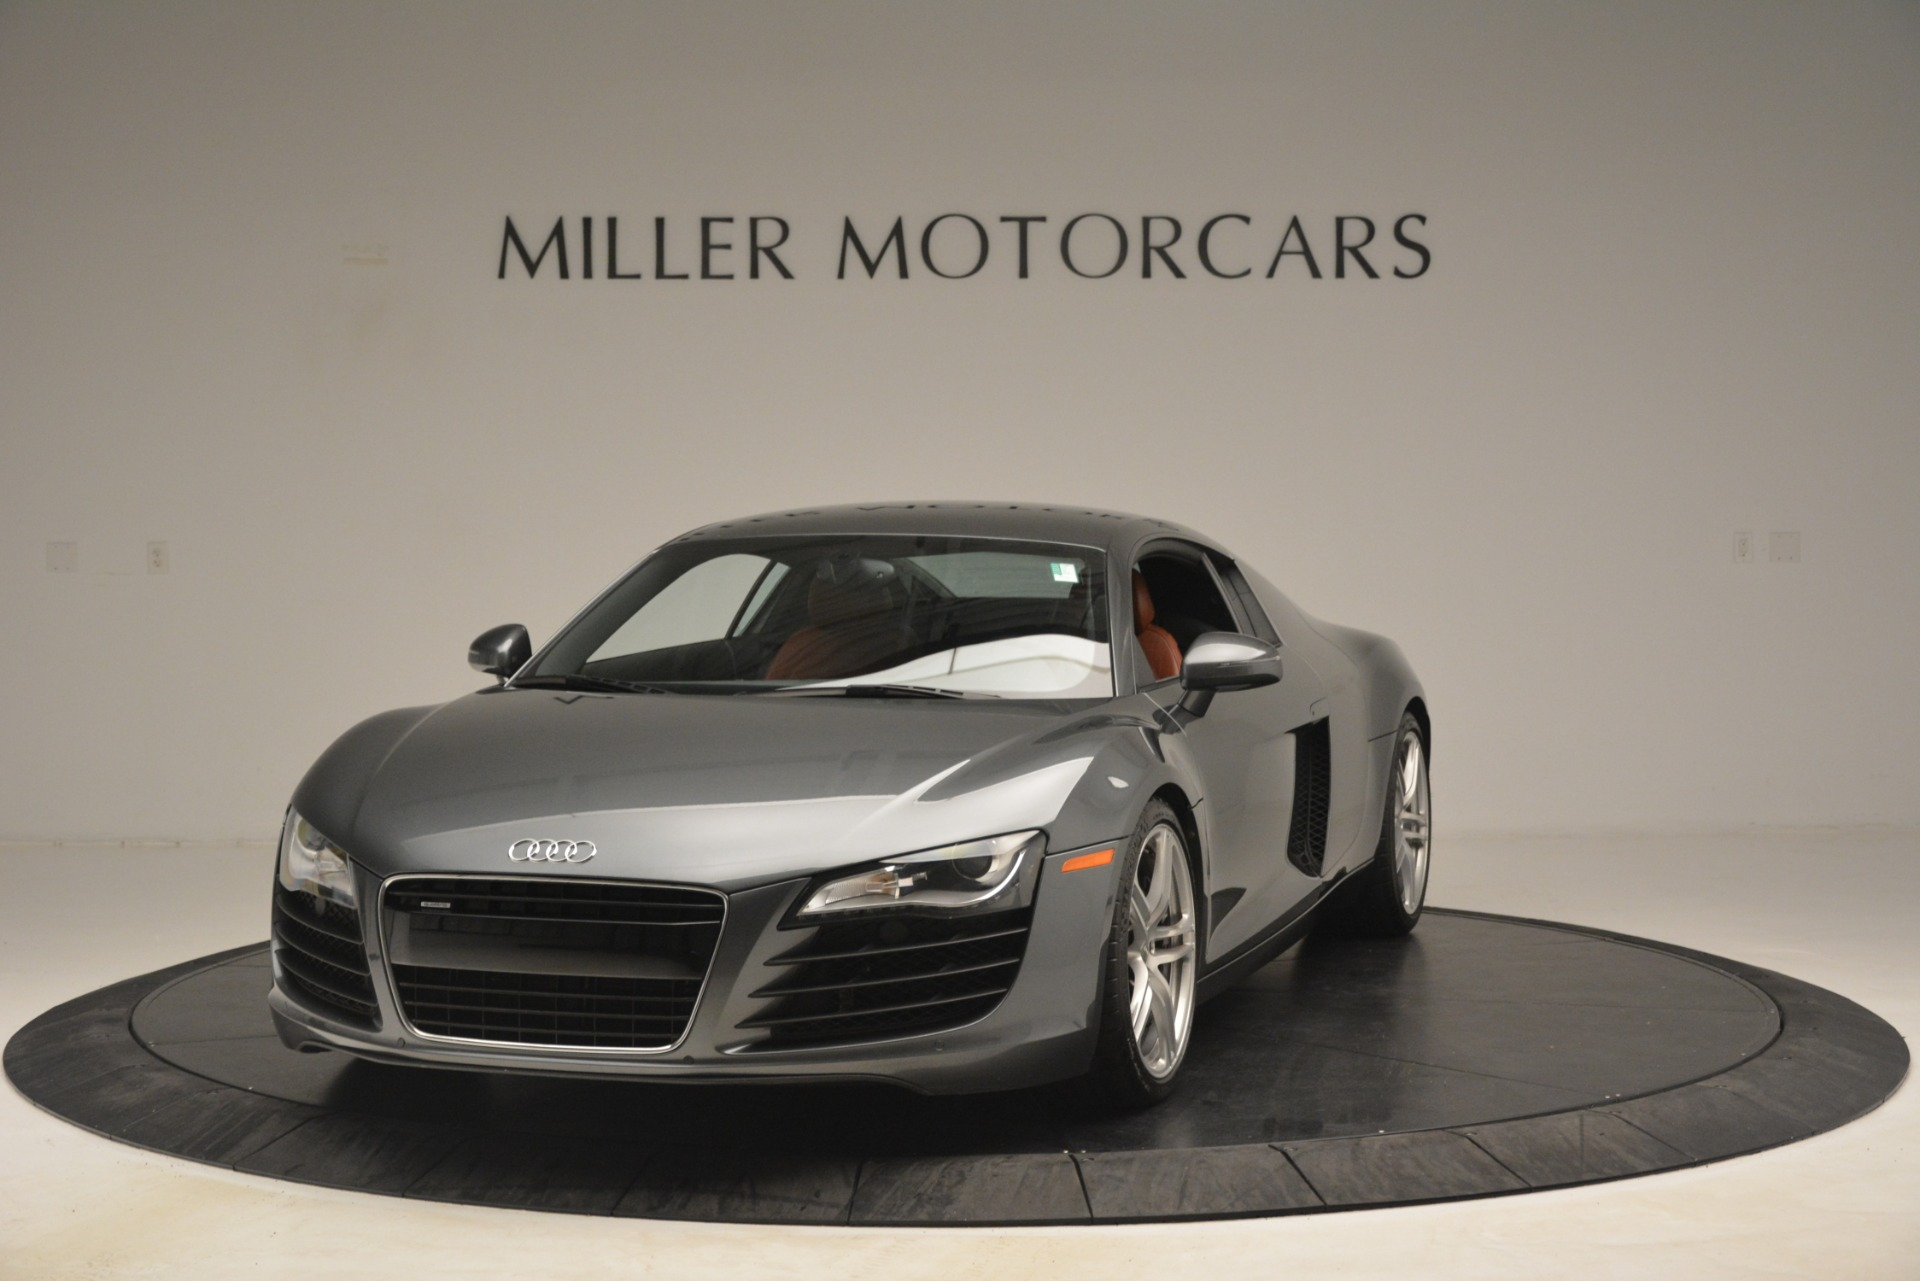 Used 2009 Audi R8 quattro for sale Sold at McLaren Greenwich in Greenwich CT 06830 1